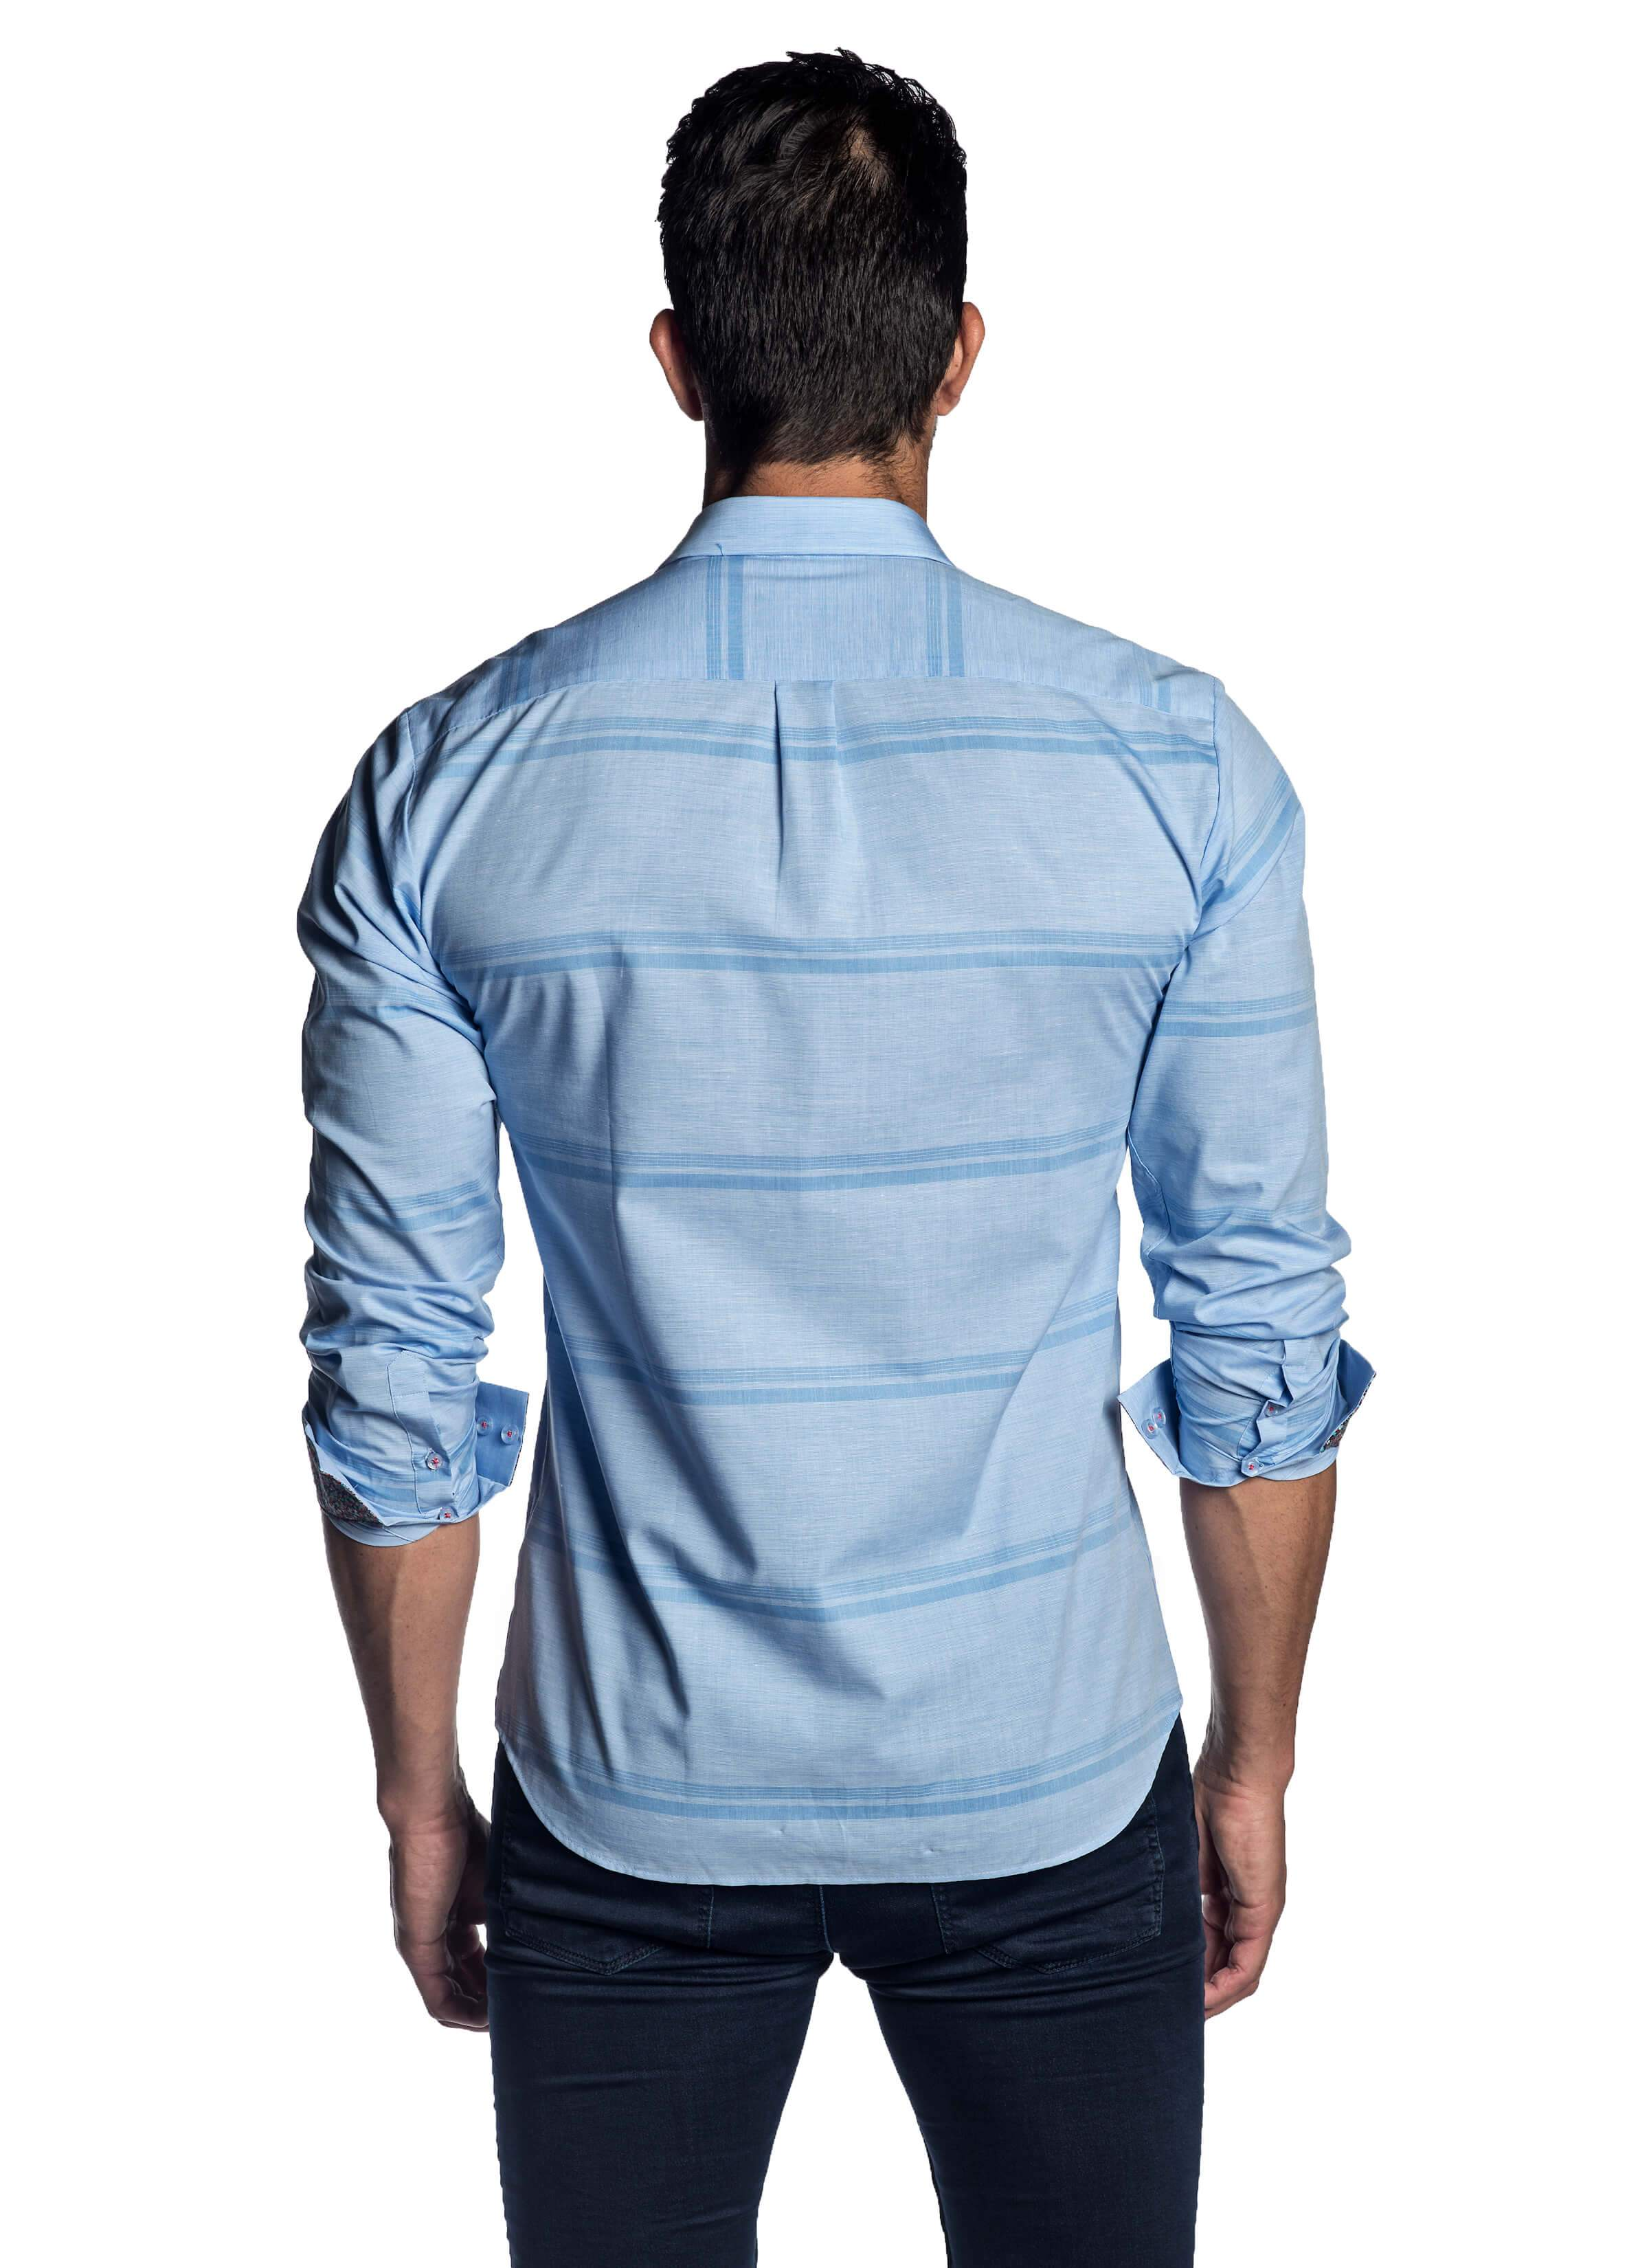 Men's Light Blue Striped Solid Shirt with Microprint Trimming - back AH-T-2001